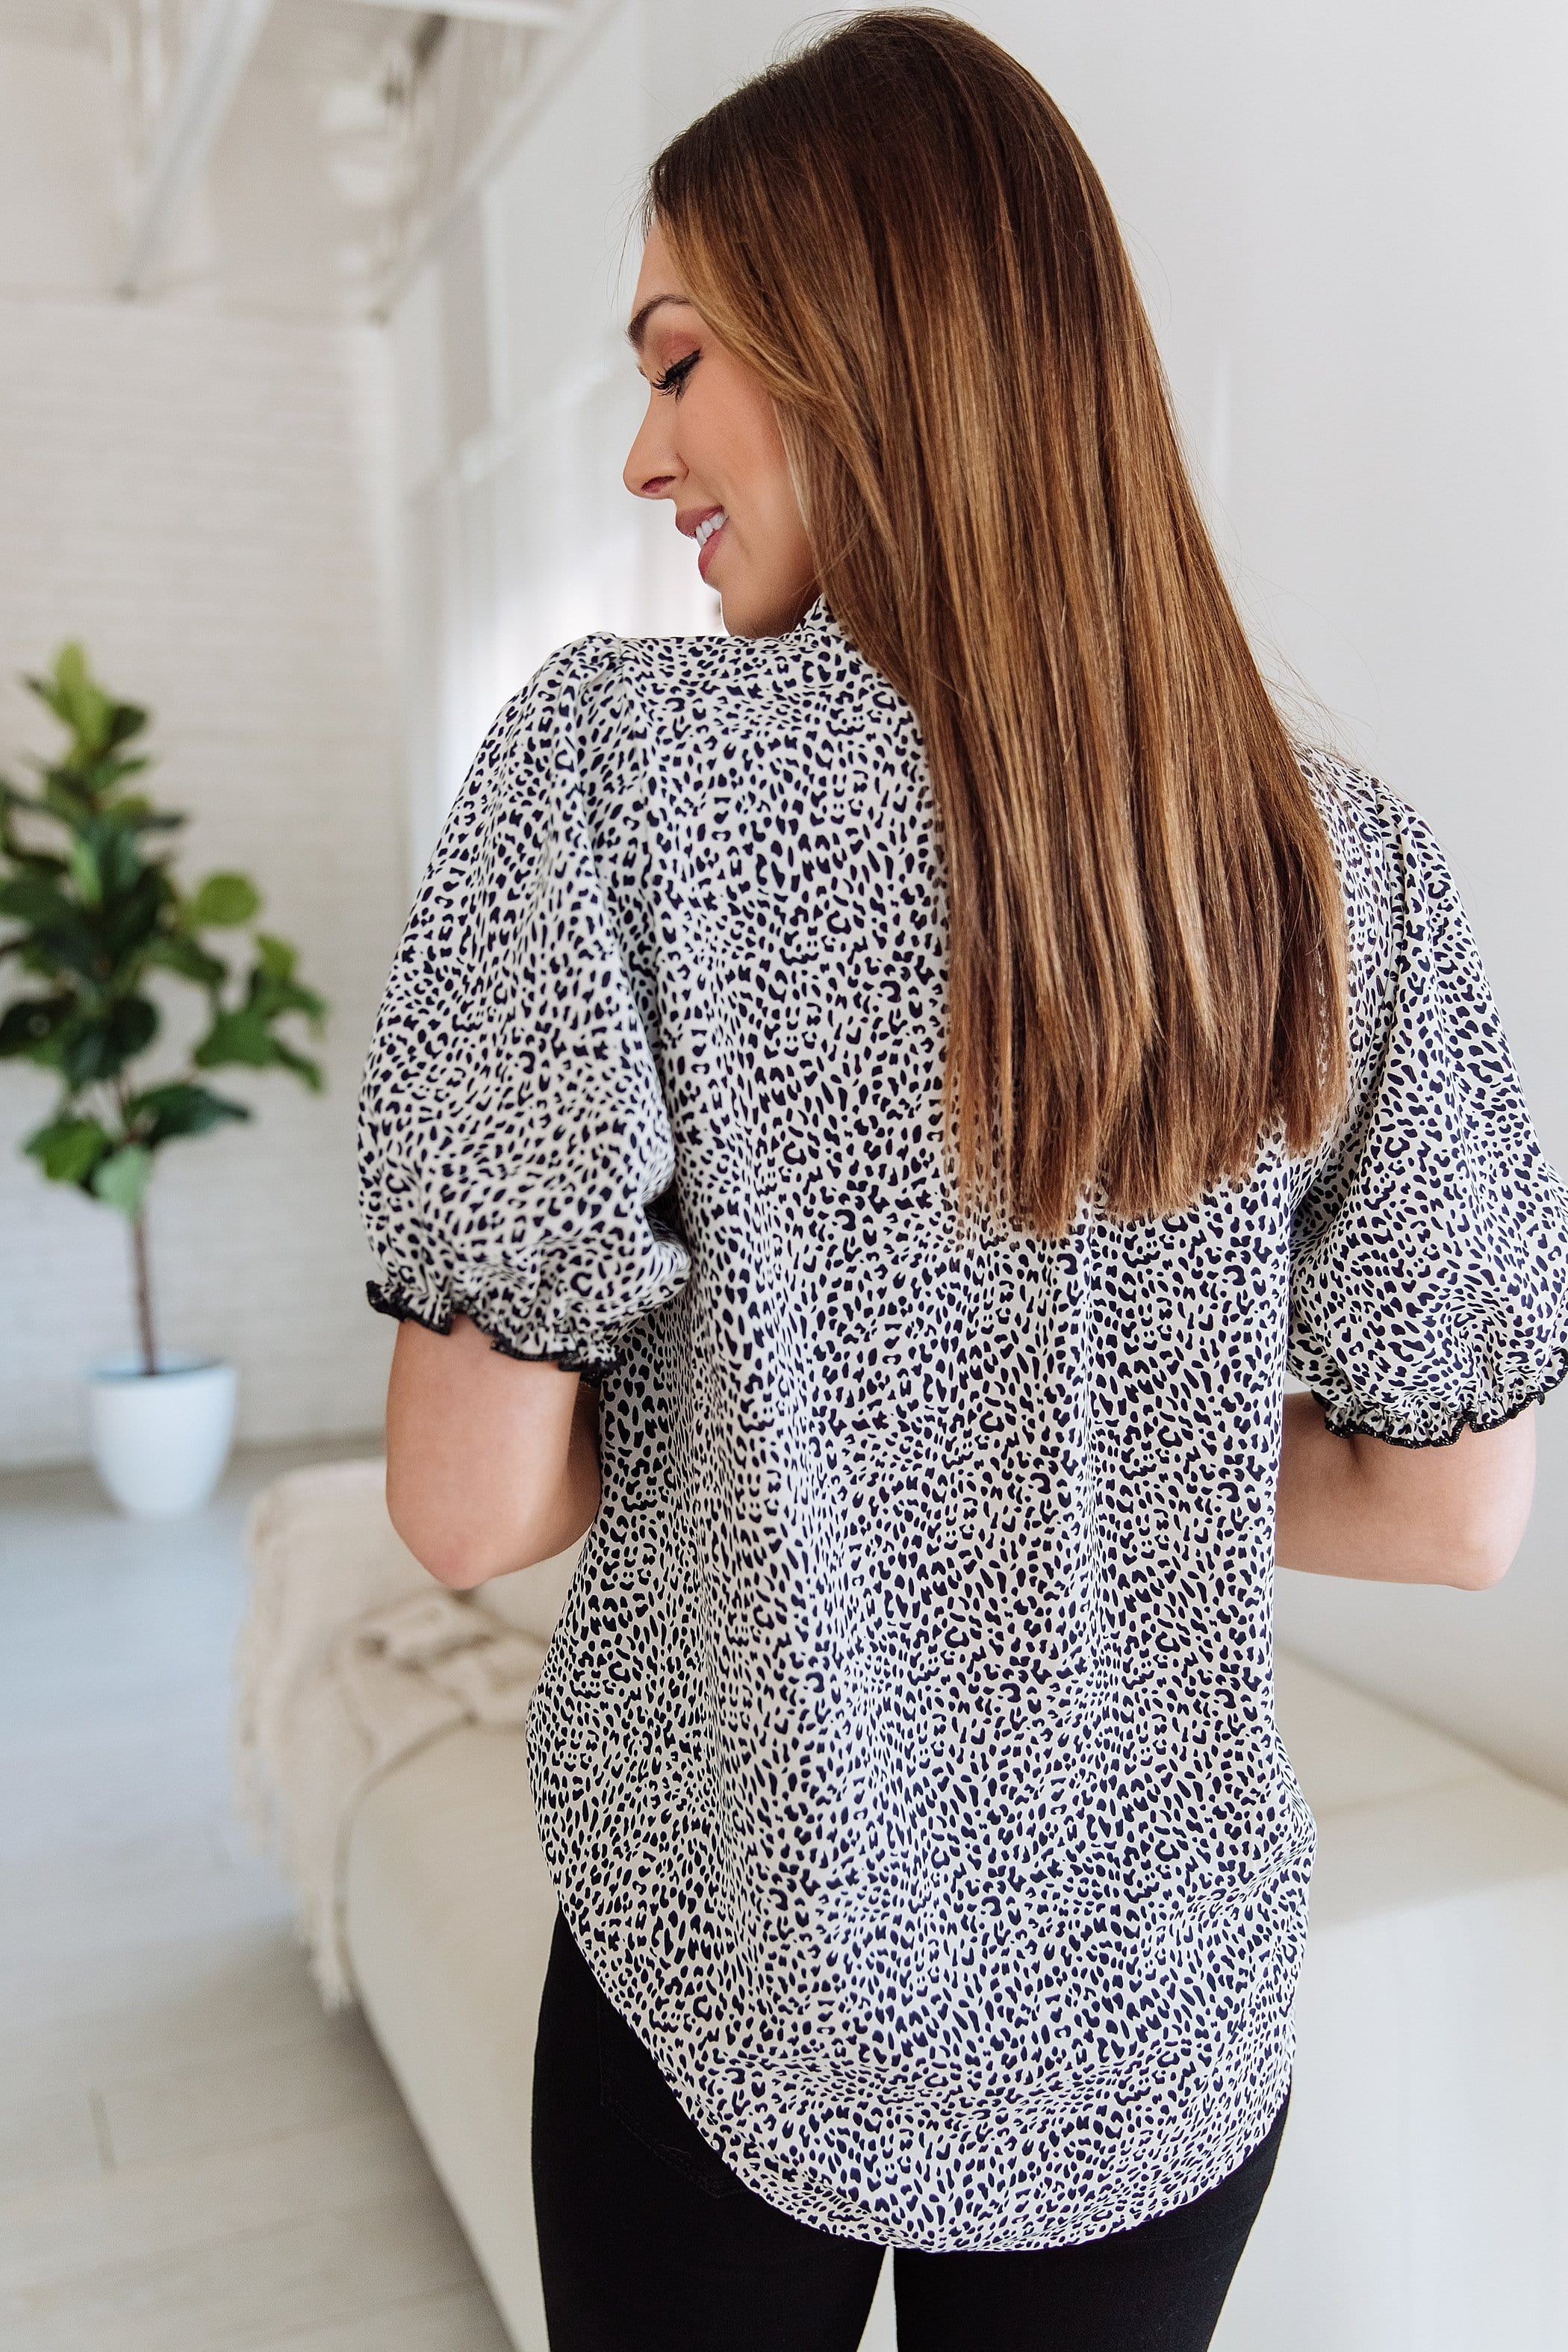 The Elena Top in Animal Print